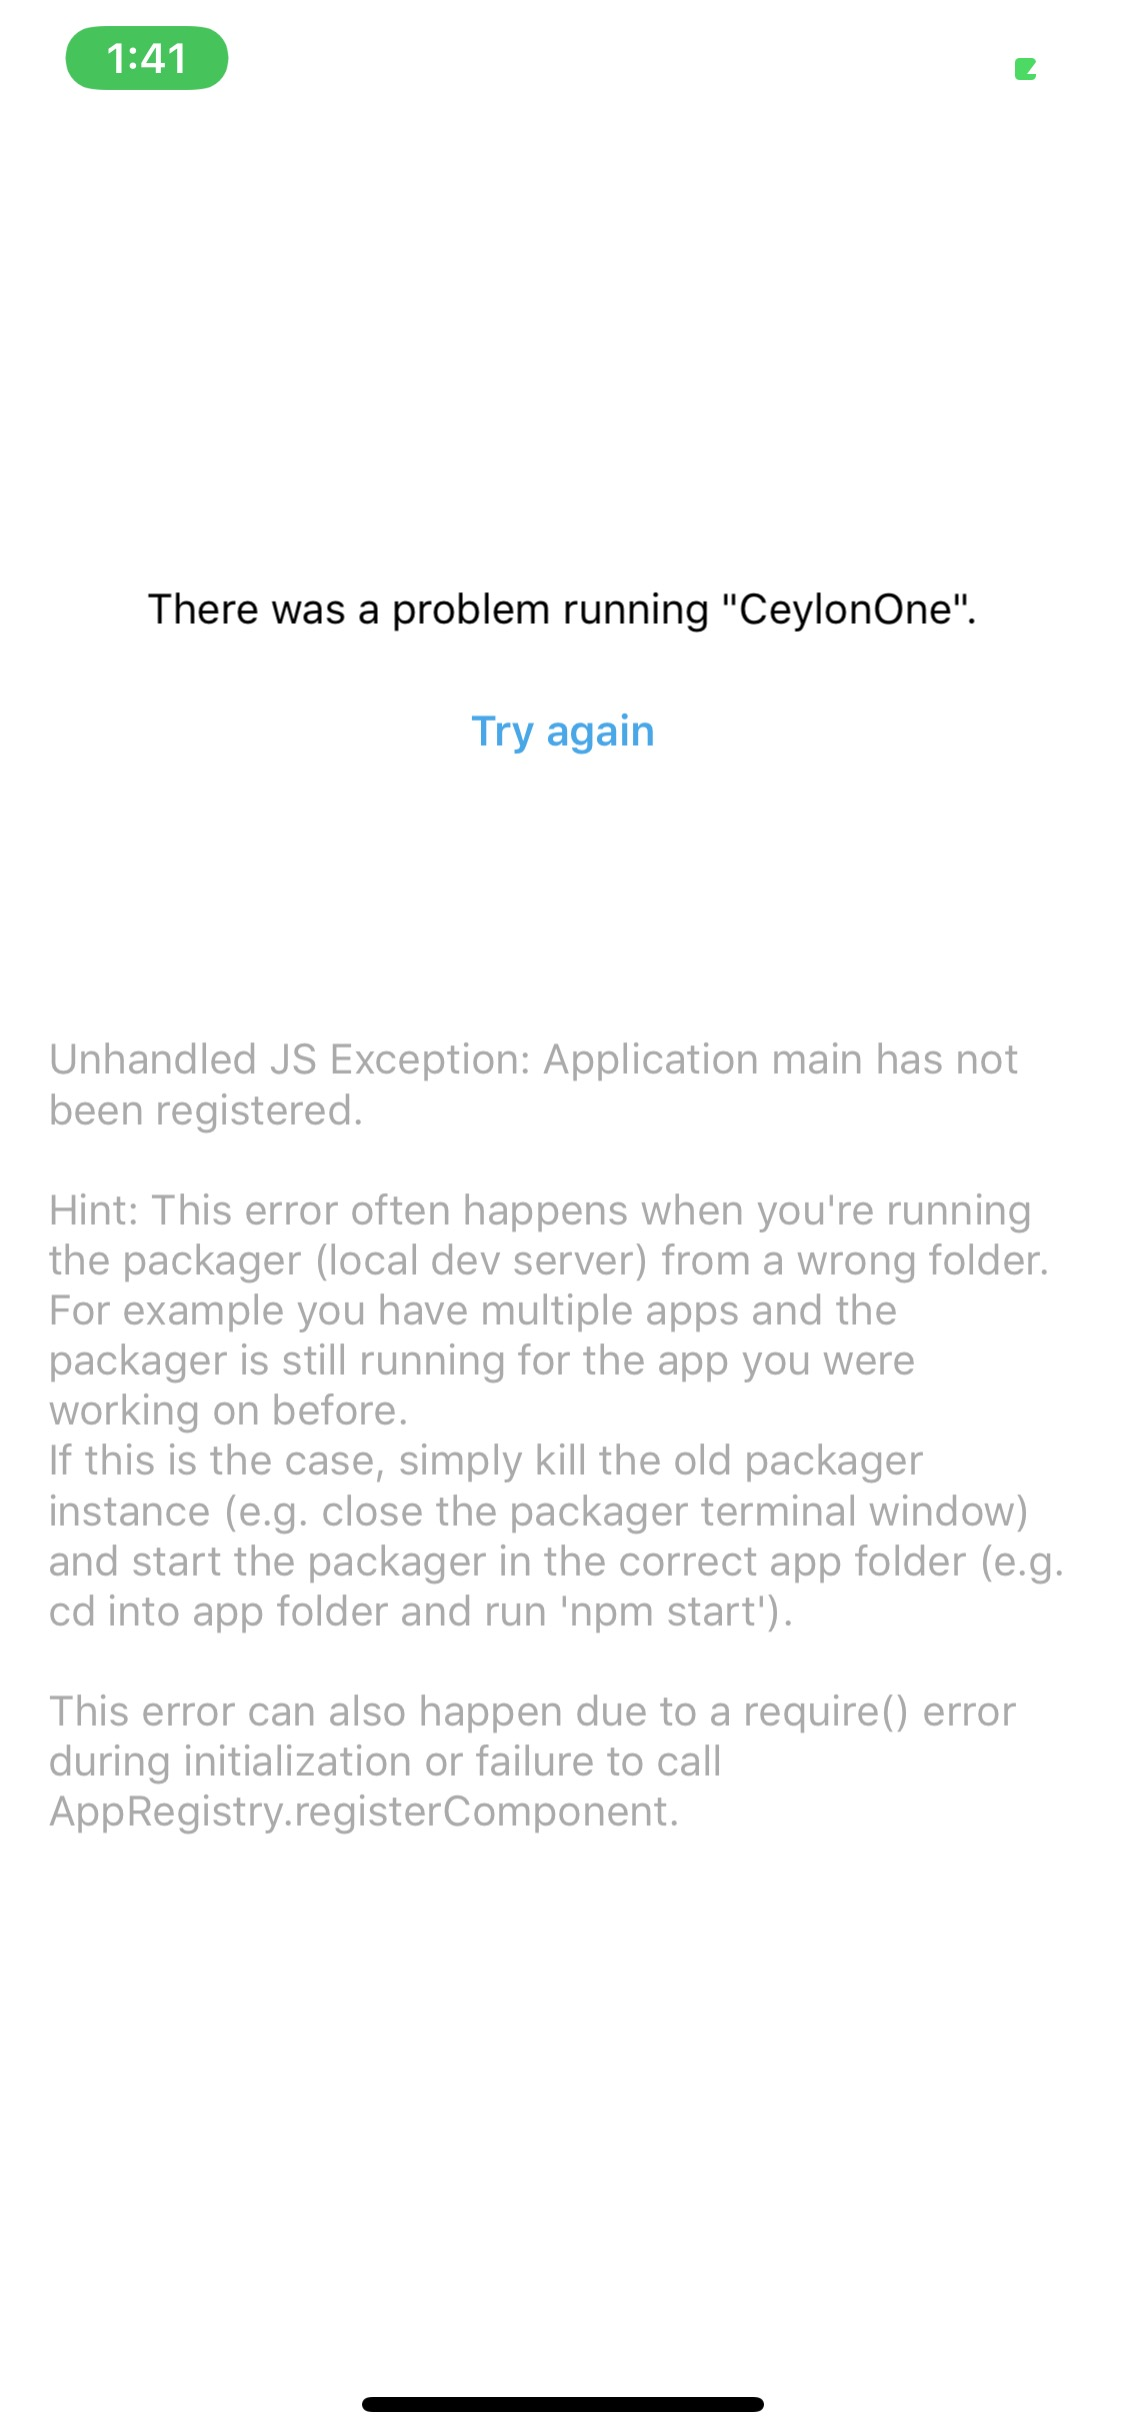 unhandled exception error occurred in your application